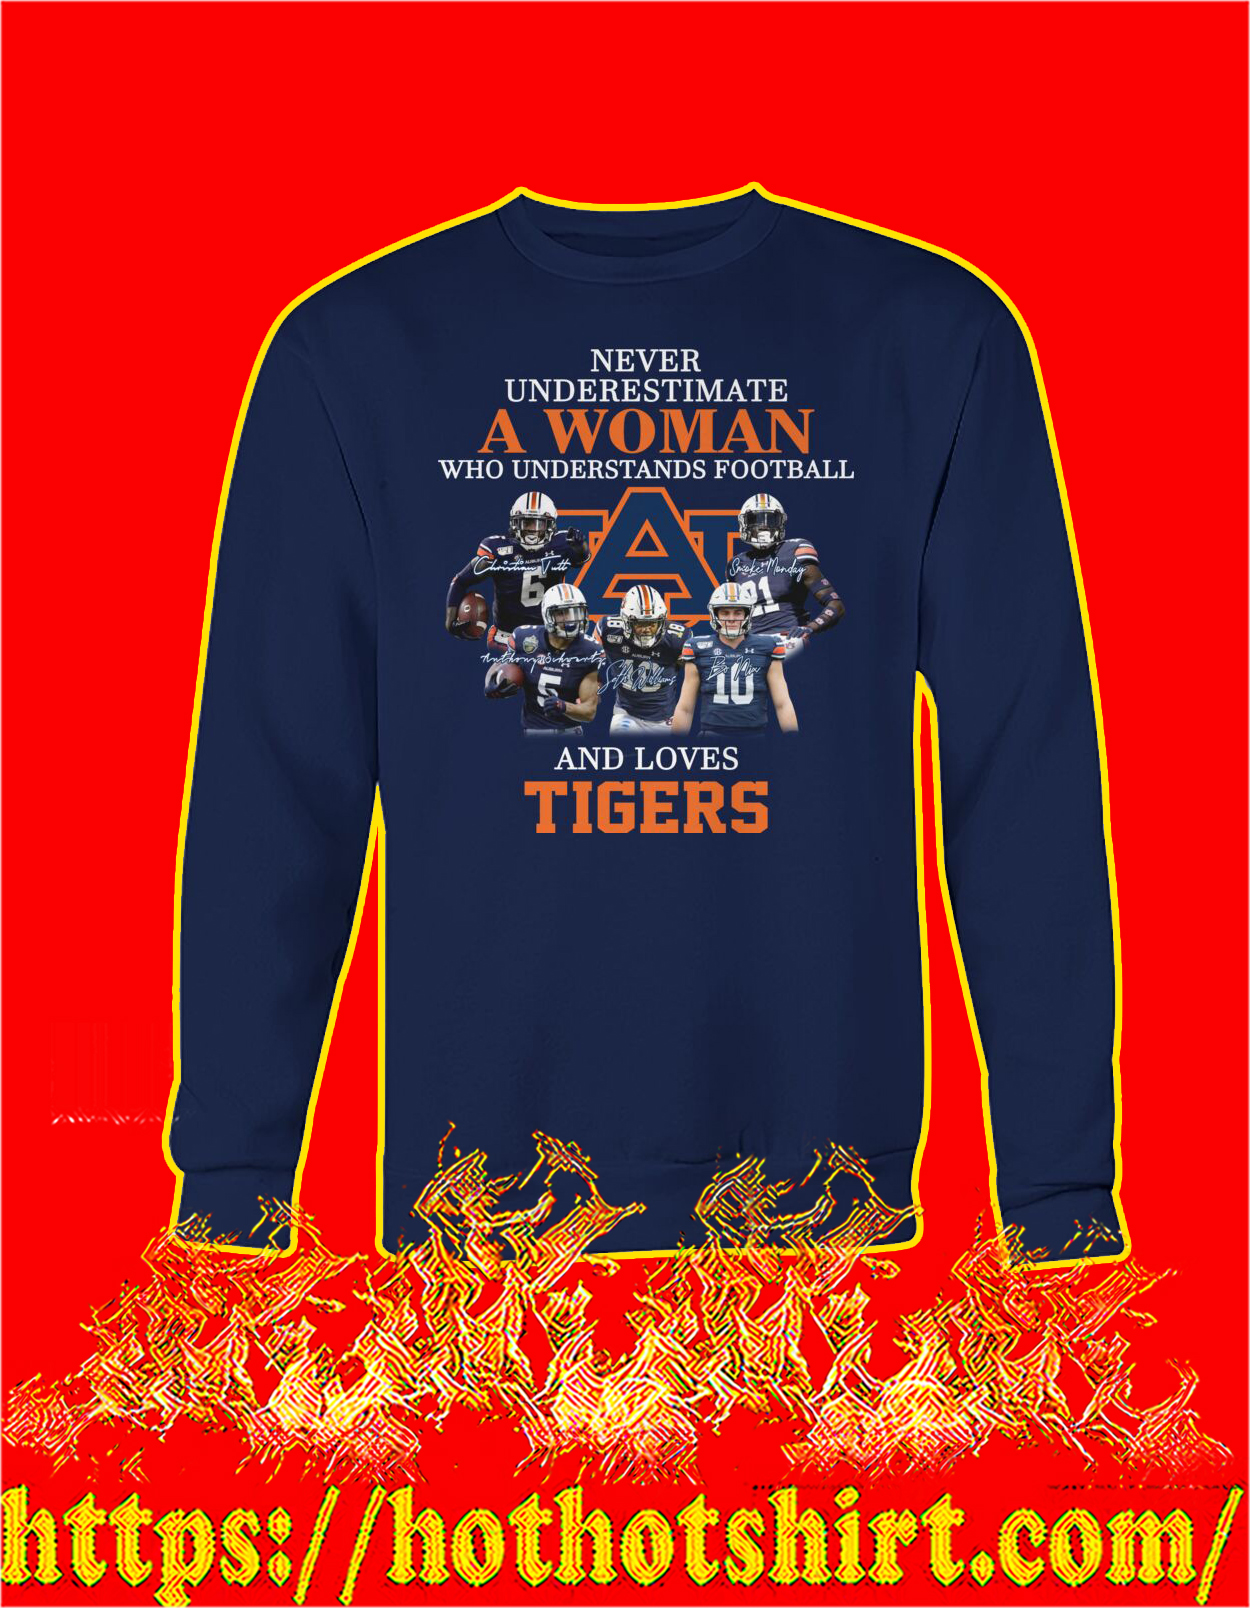 Never underestimate a woman understands football and loves tigers sweatshirt